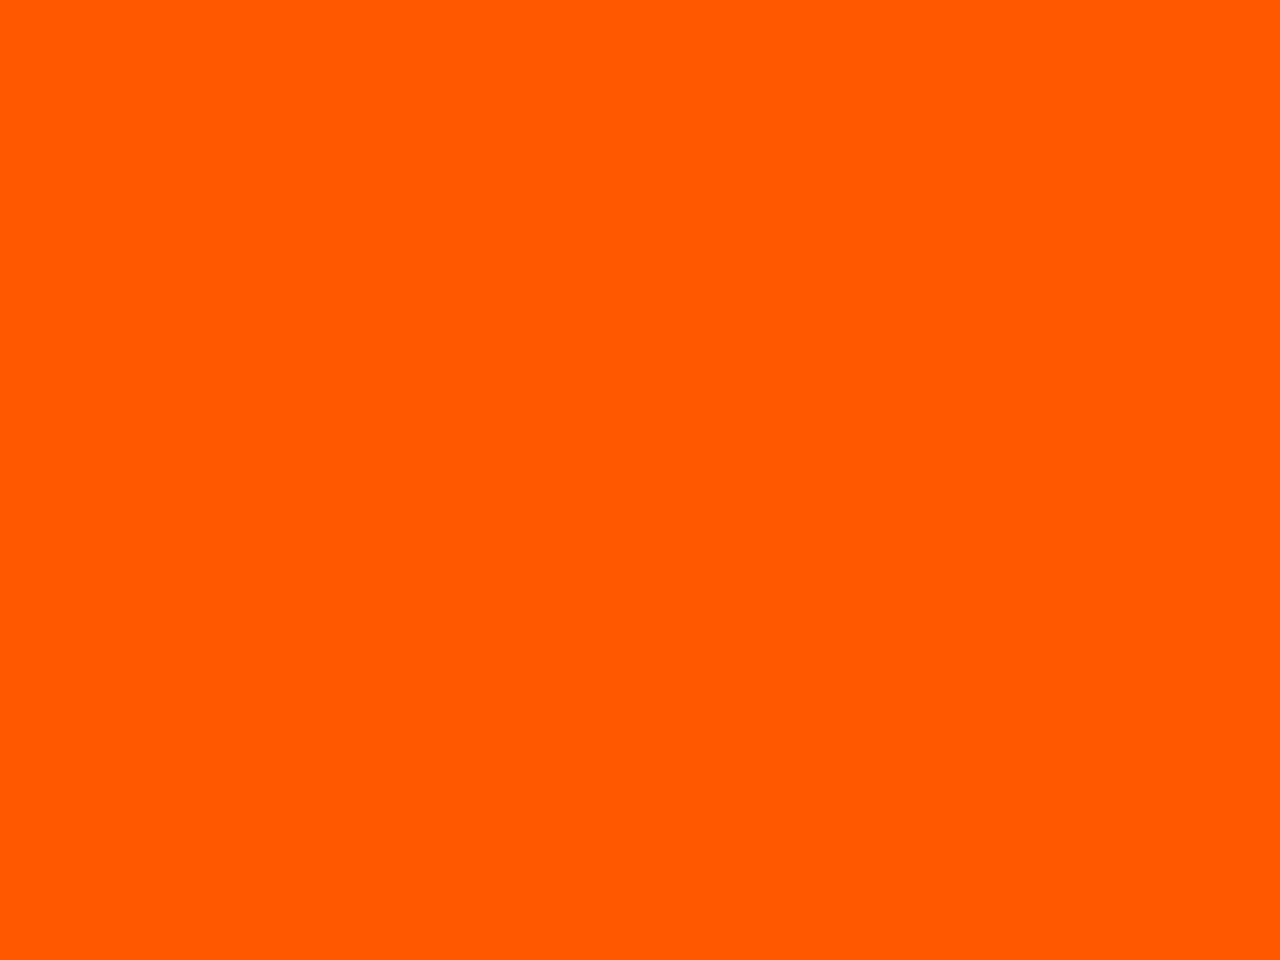 1280x960 Orange Pantone Solid Color Background